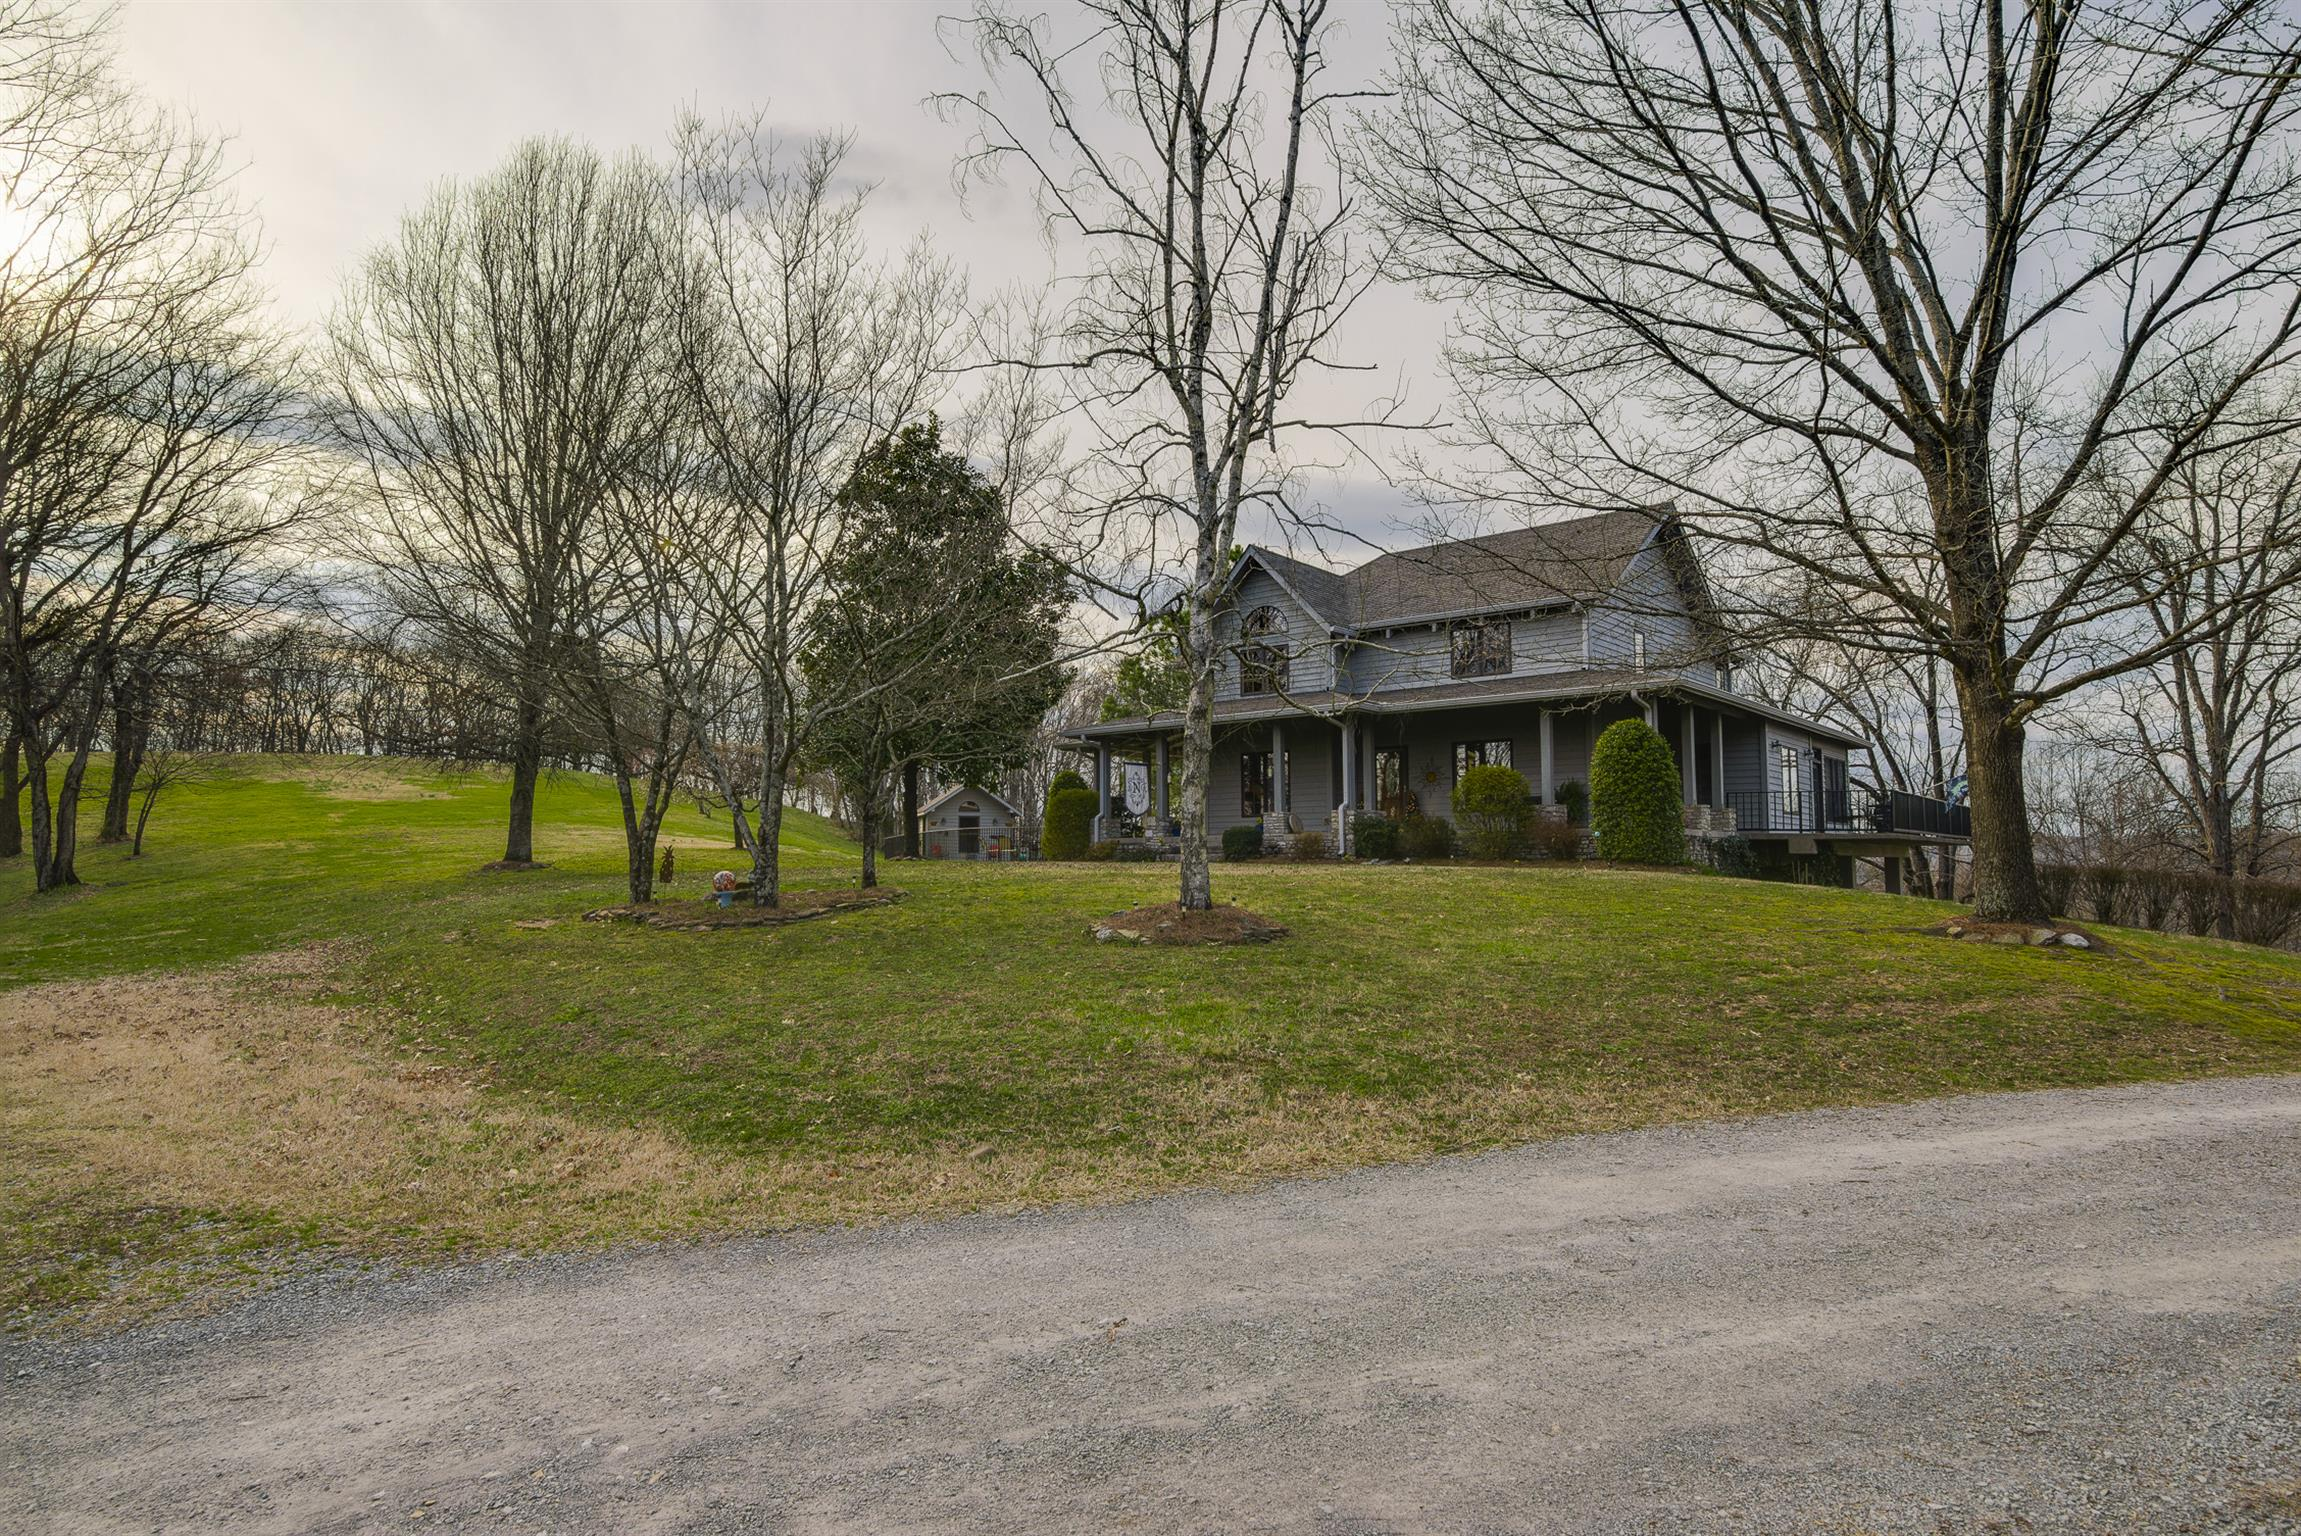 2020 Baker Rd, Goodlettsville, TN 37072 - Goodlettsville, TN real estate listing